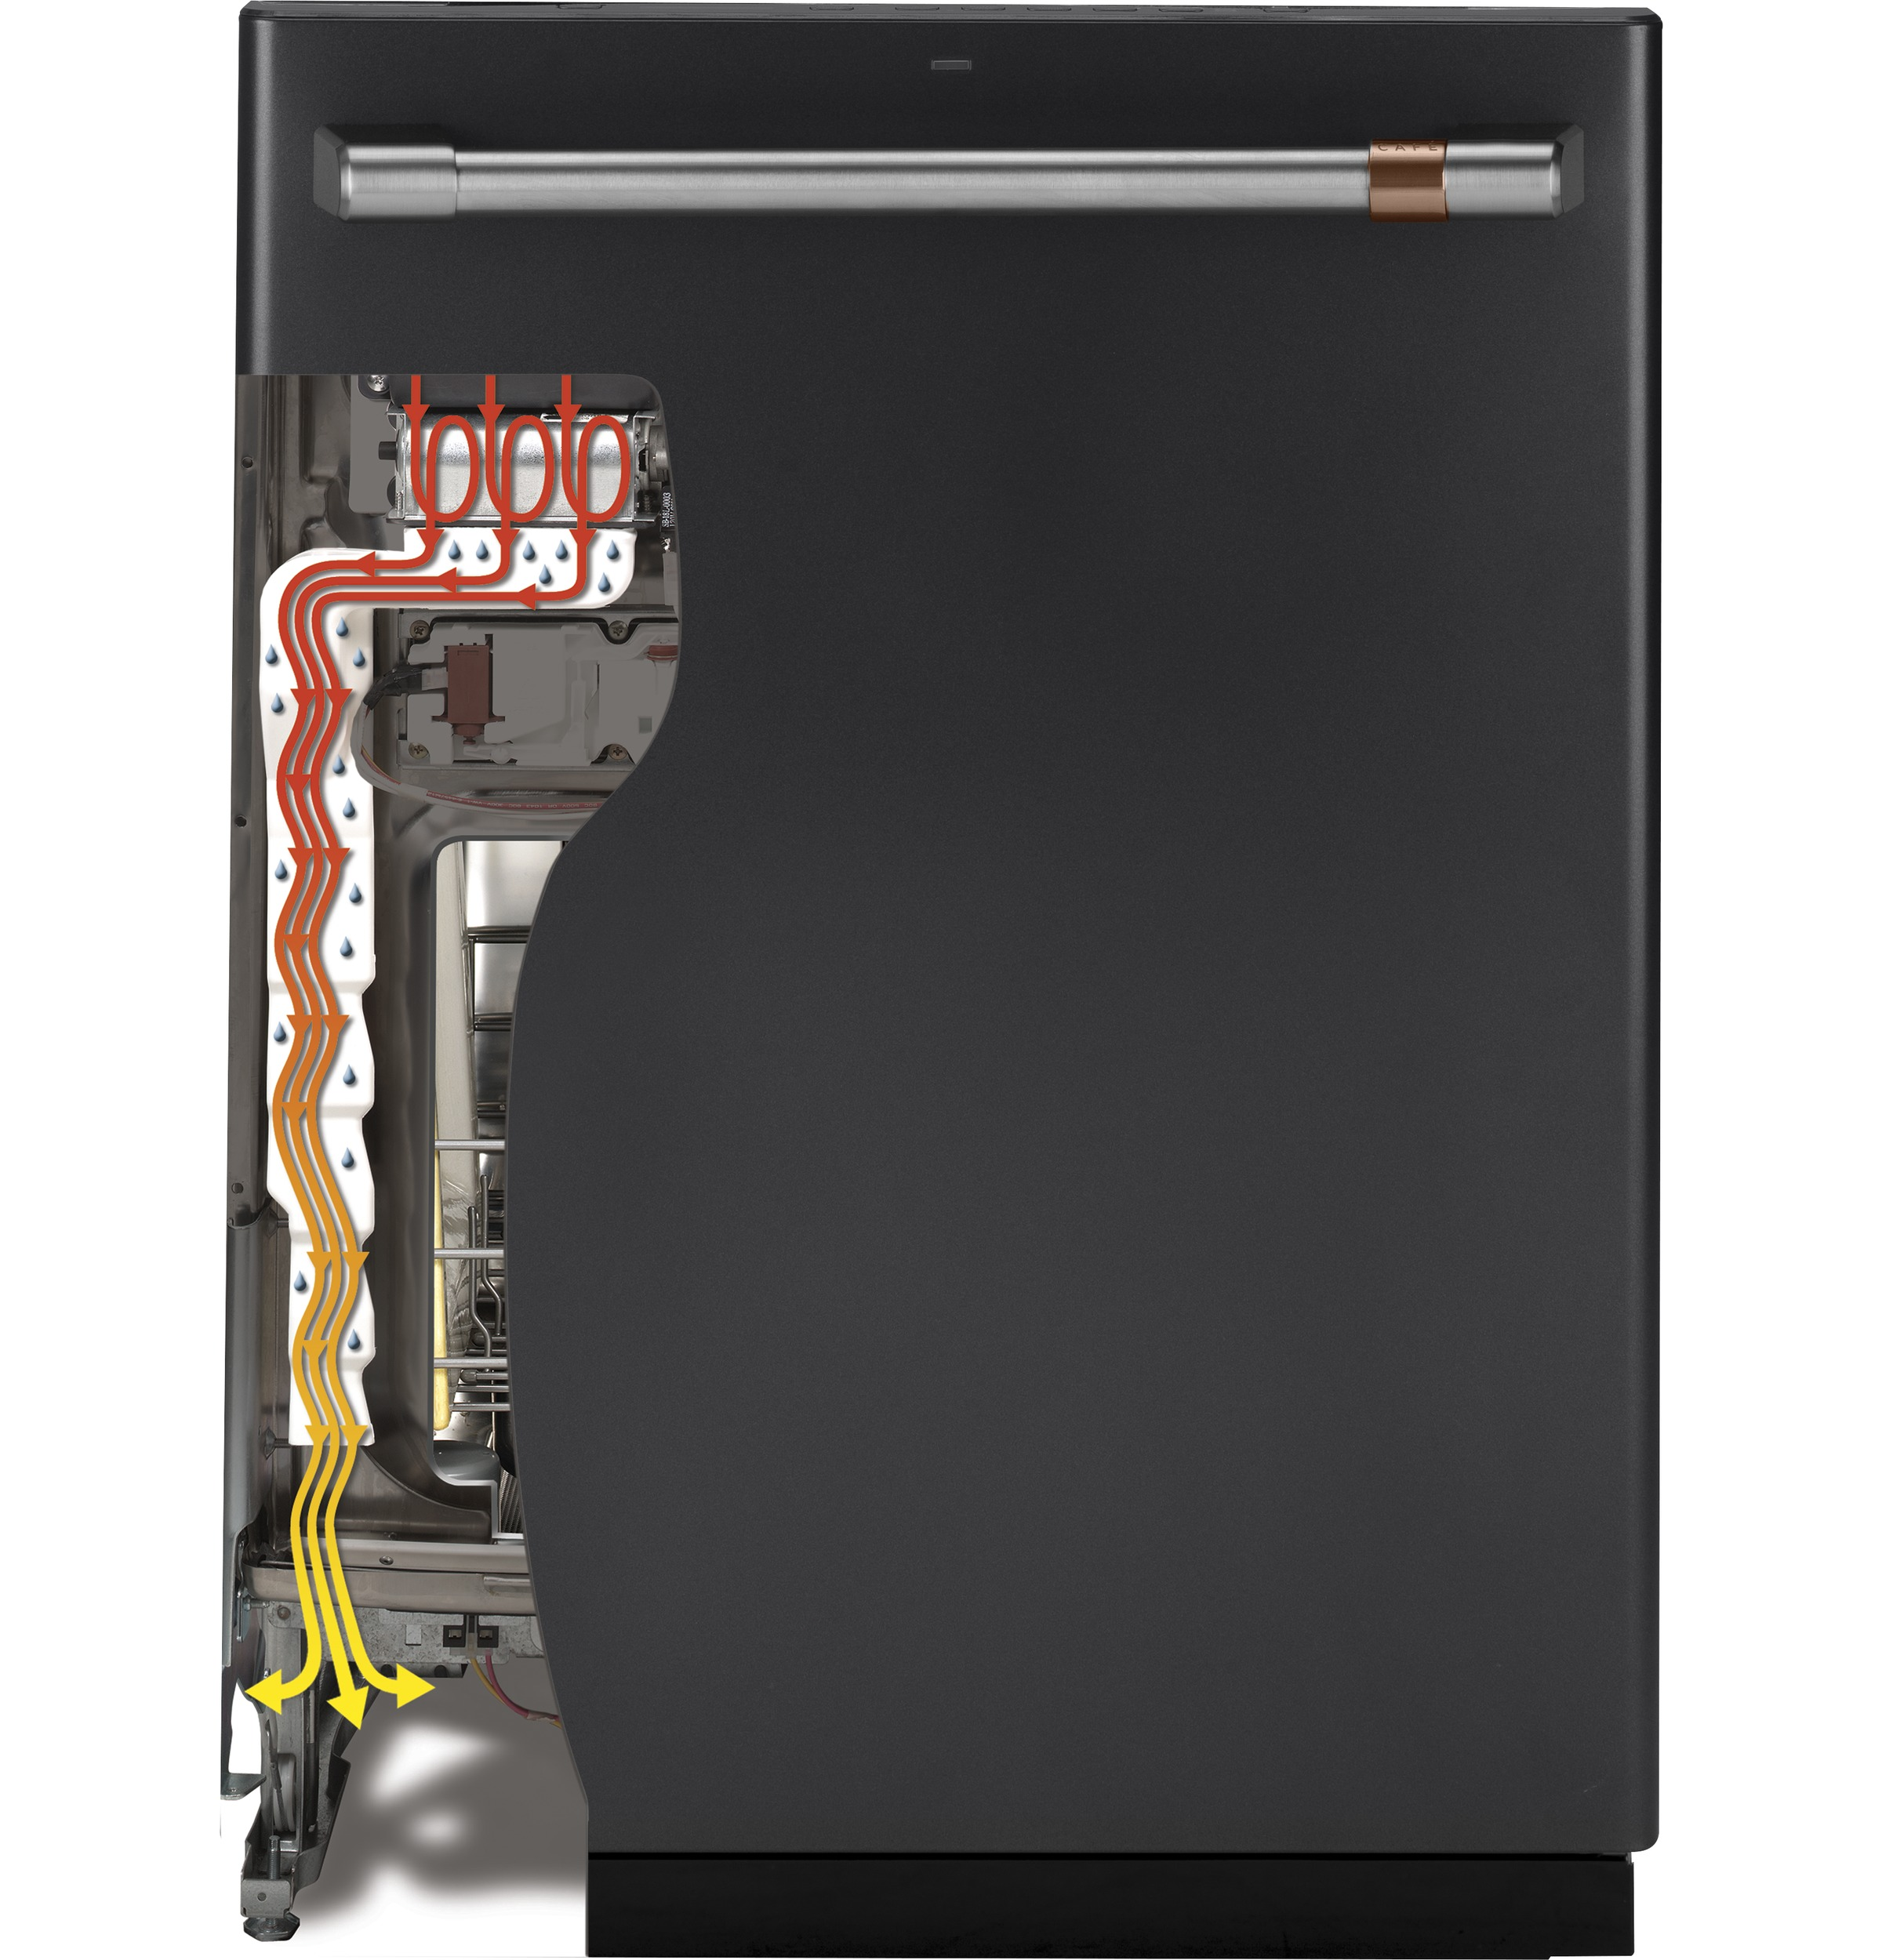 Model: CDT866P4MW2 | Cafe Café™ Stainless Interior Built-In Dishwasher with Hidden Controls